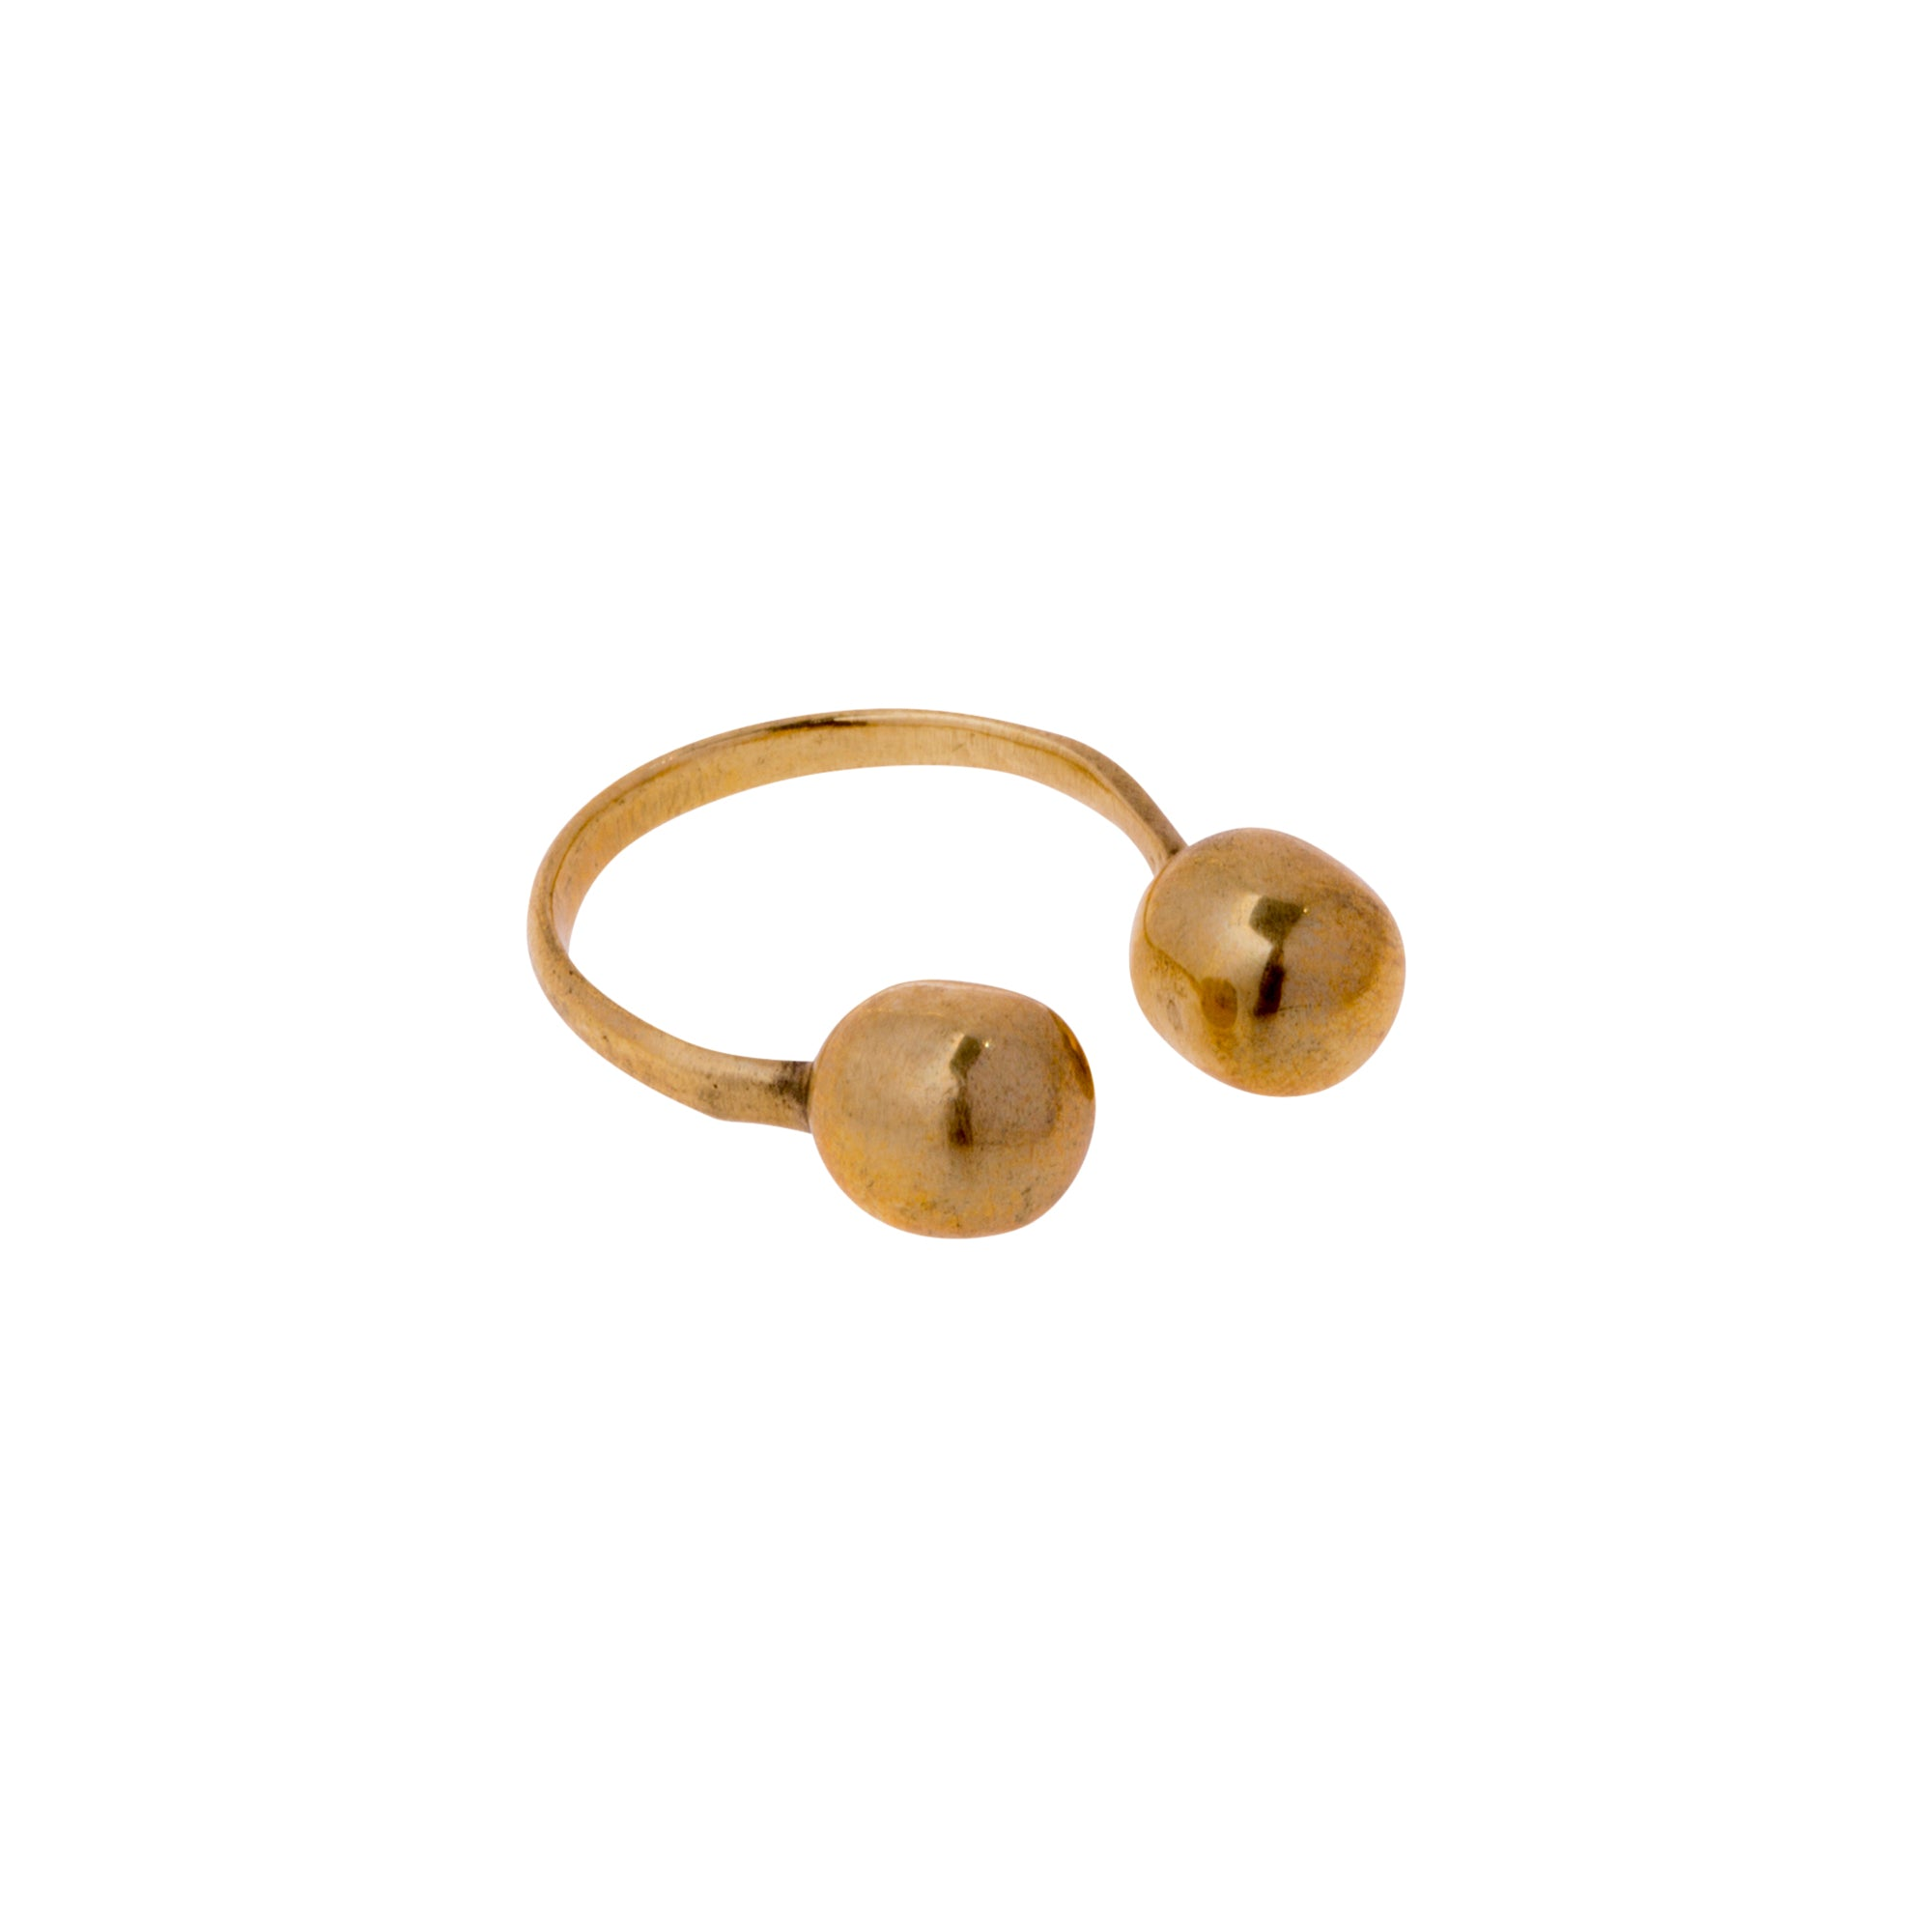 Brass Hypatia Ring by Ariana Boussard-Reifel for Broken English Jewelry